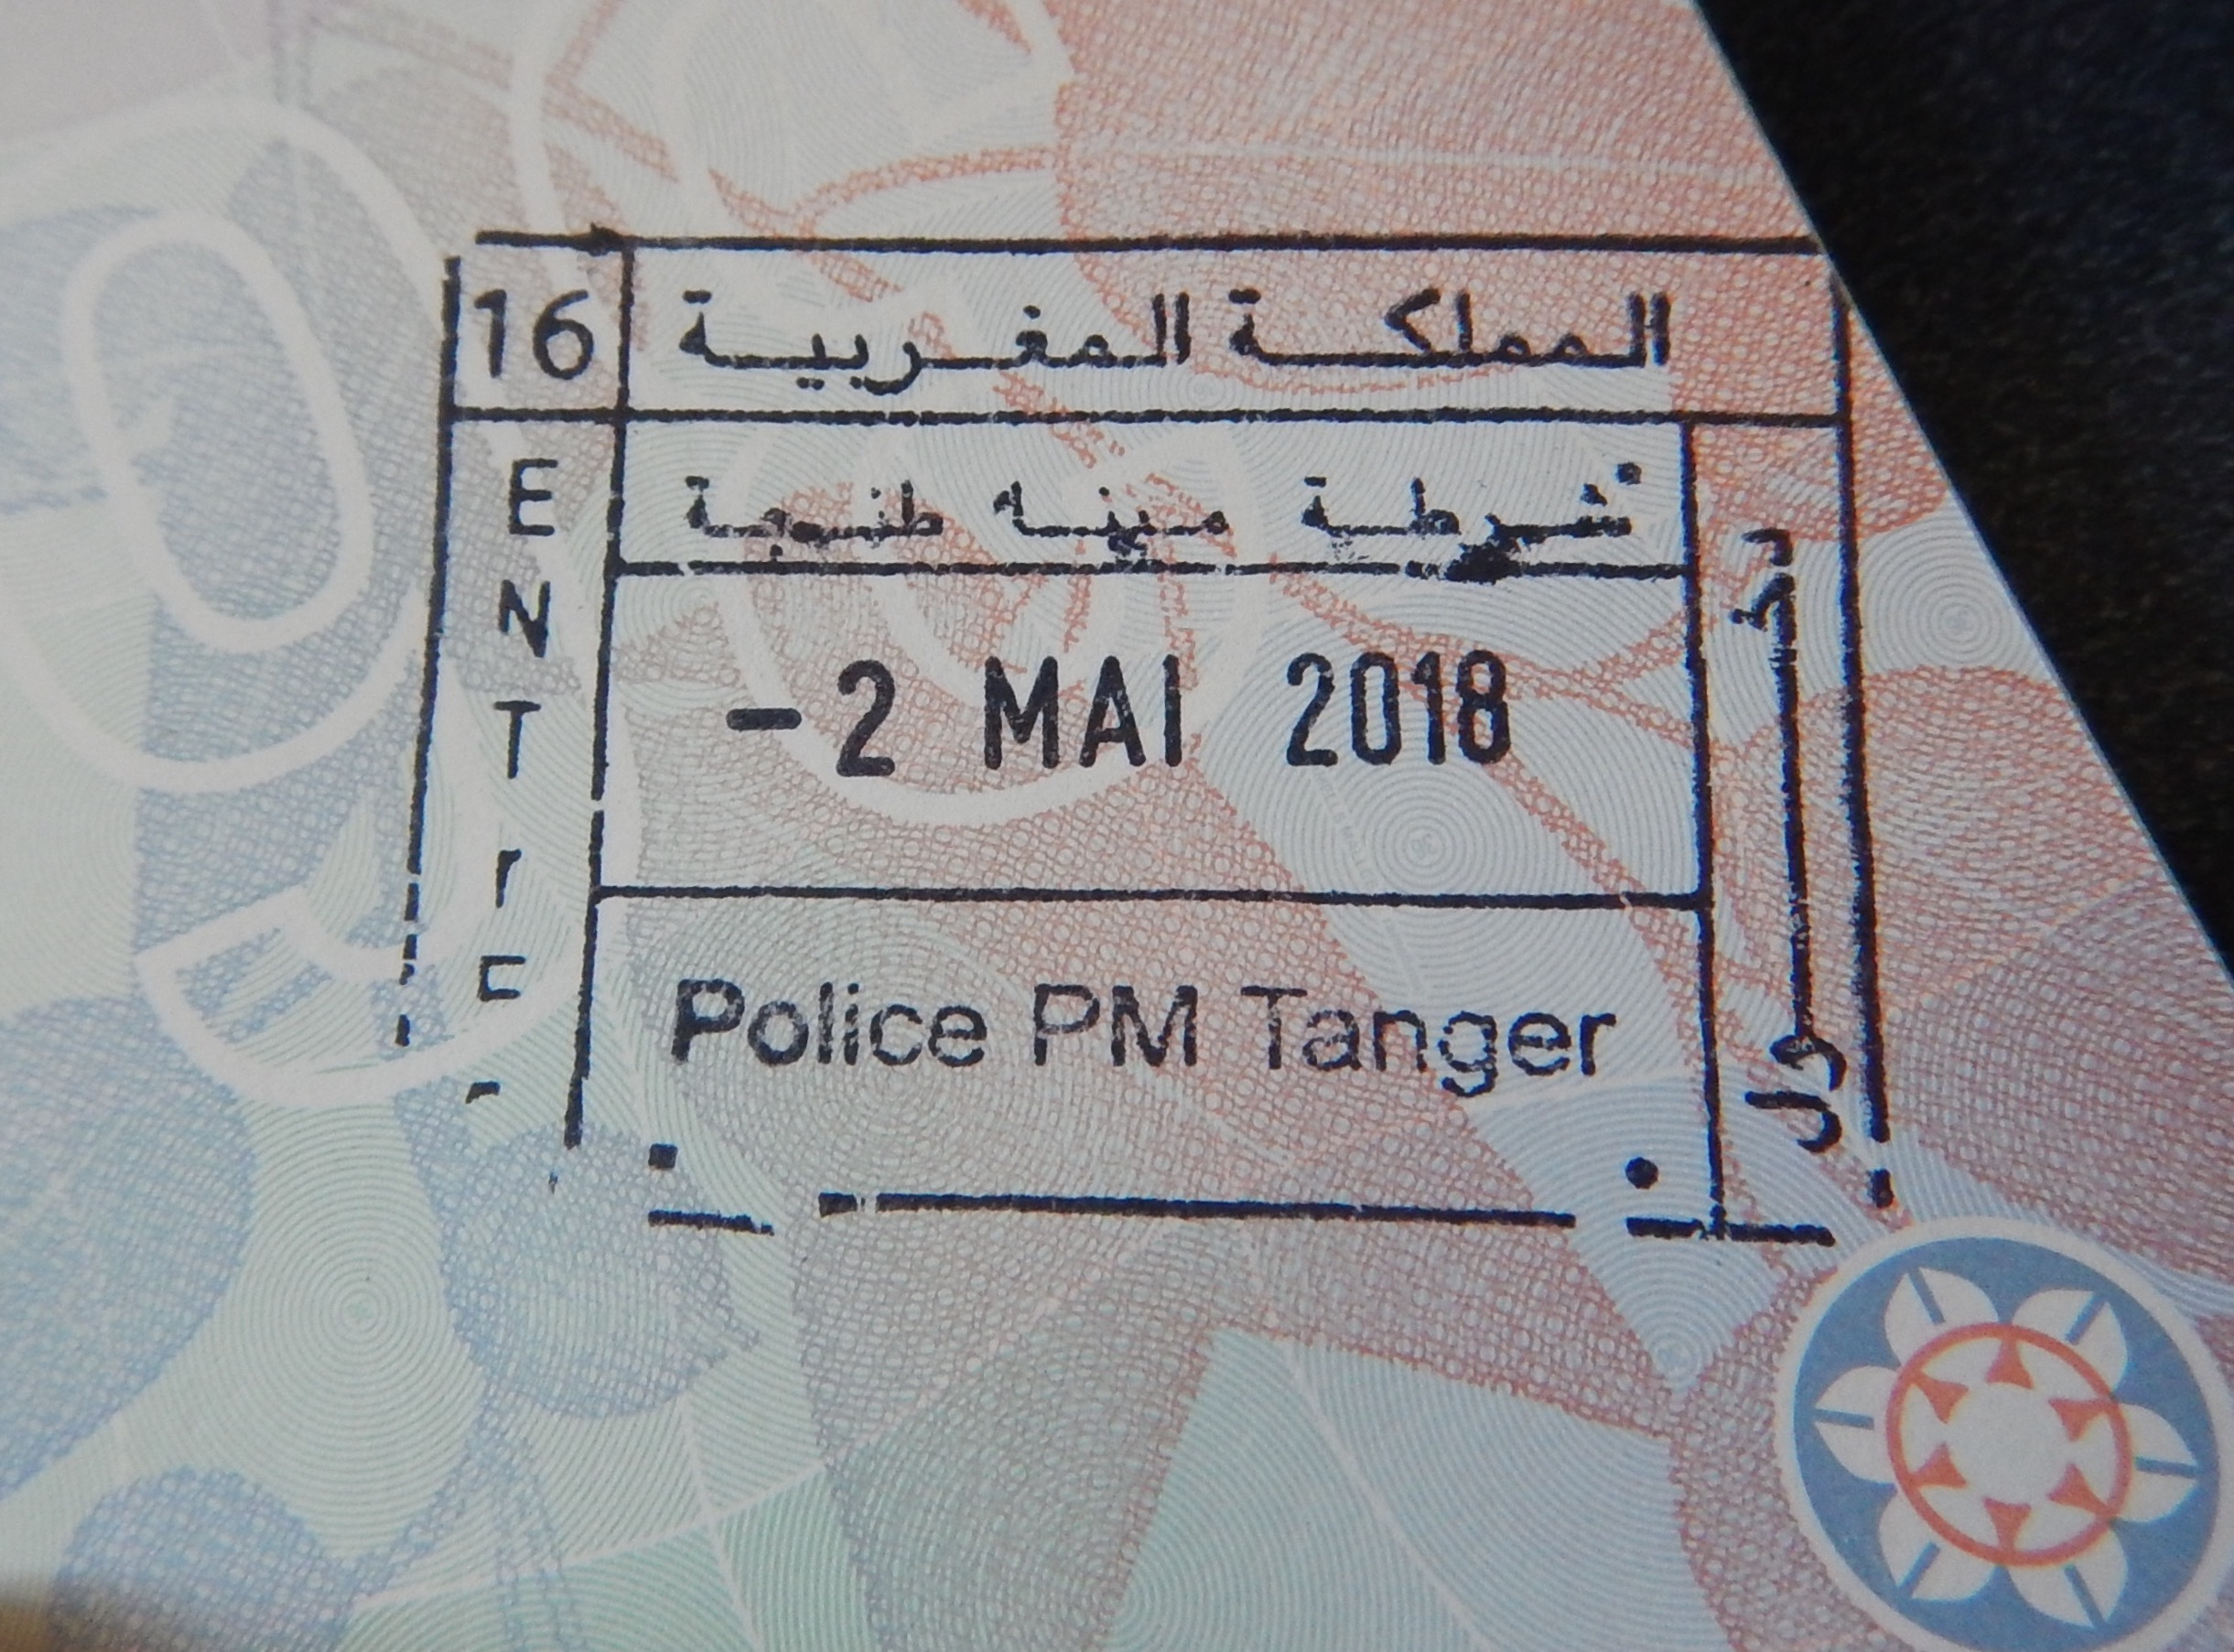 Passport stamp for Morocco